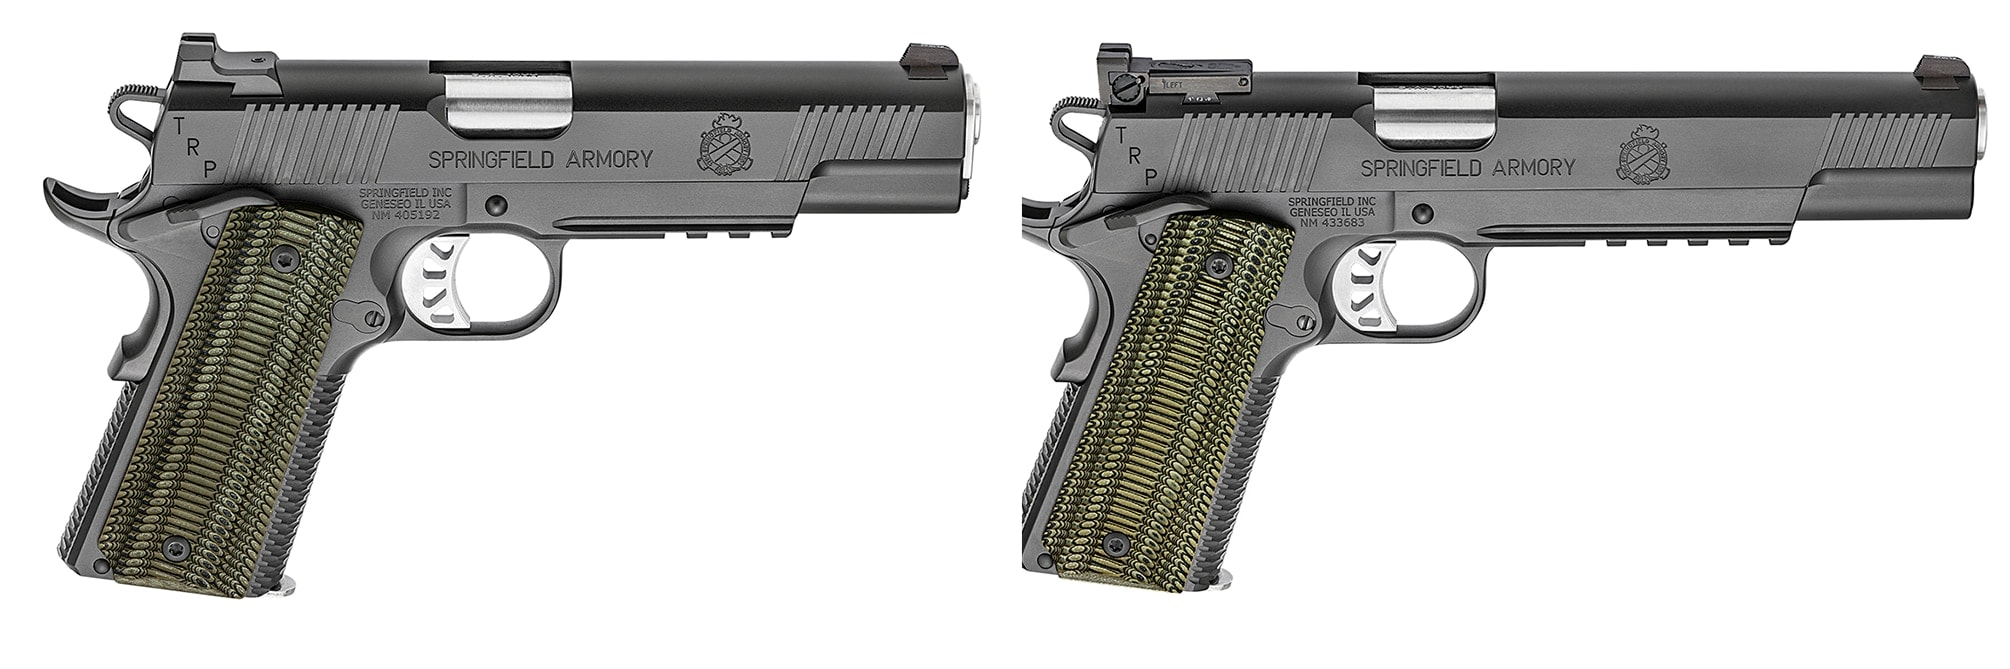 Springfield Armory's X revealed as 1911 TRP Operator in 10mm